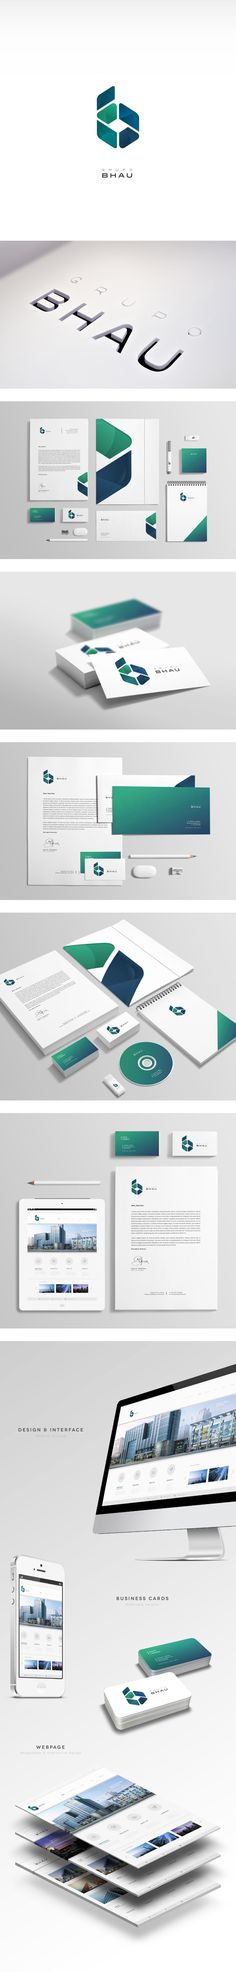 Grupo BHAU by Diego Leyva, via Behance